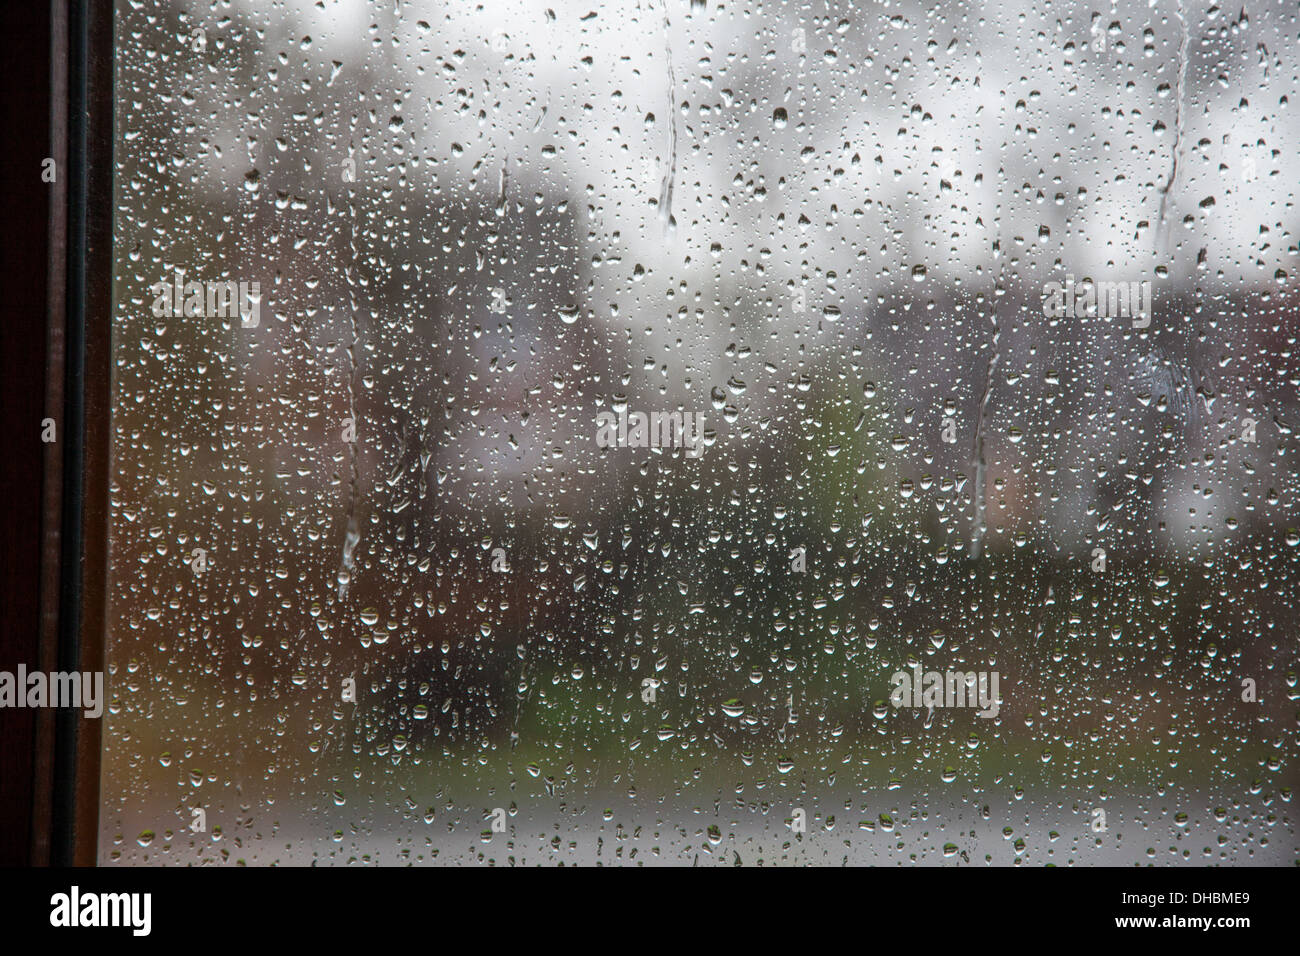 Rain drops on a glass window pane - Stock Image